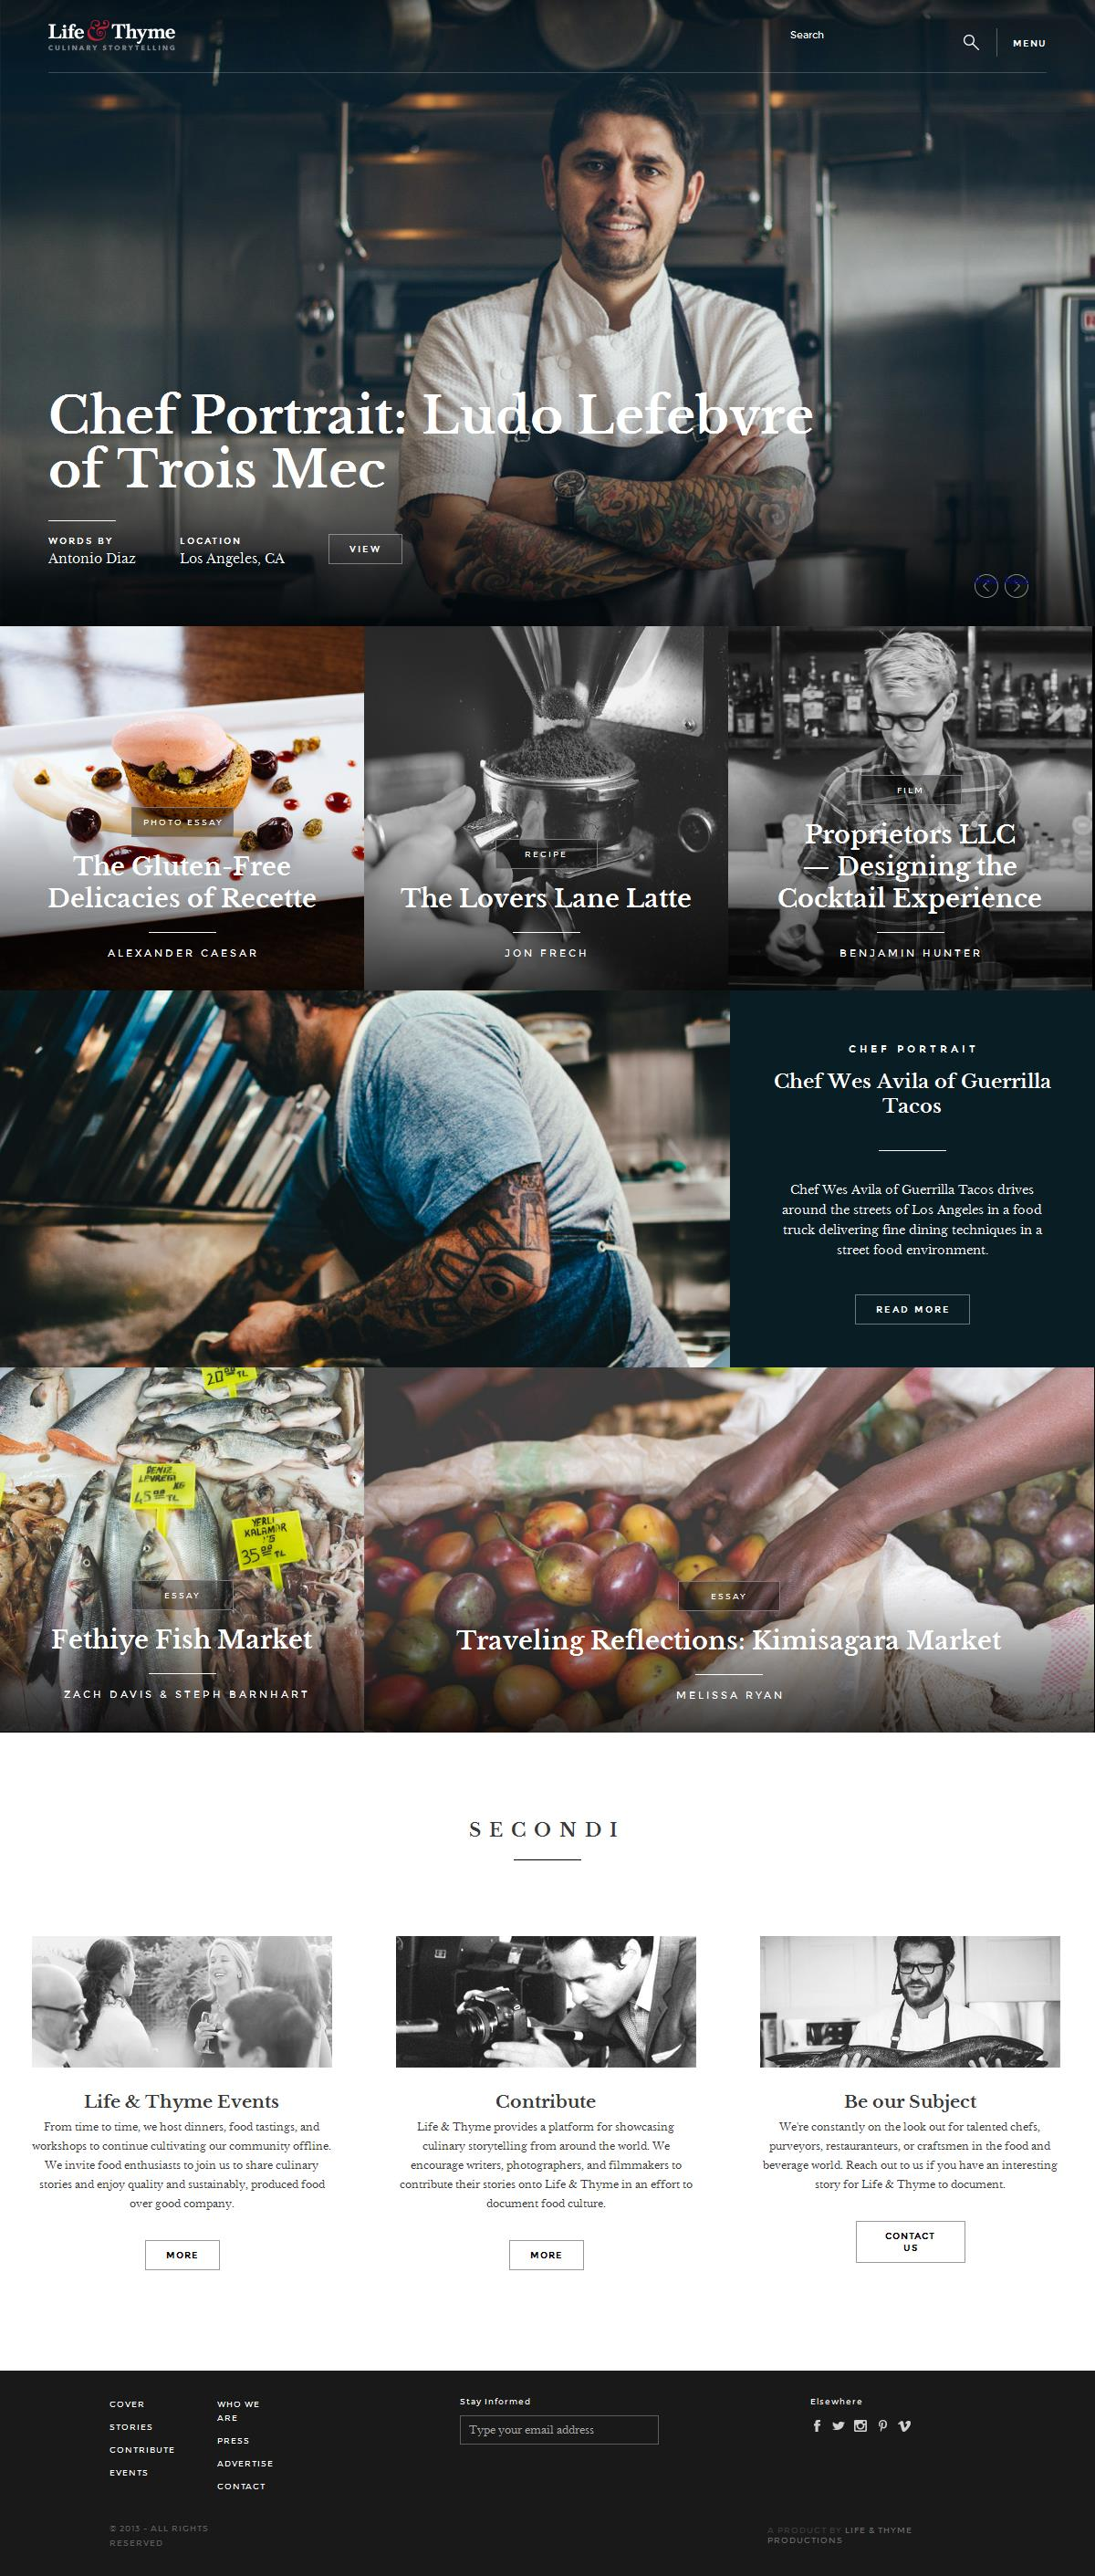 PSD to Wordpress - Life And Thyme